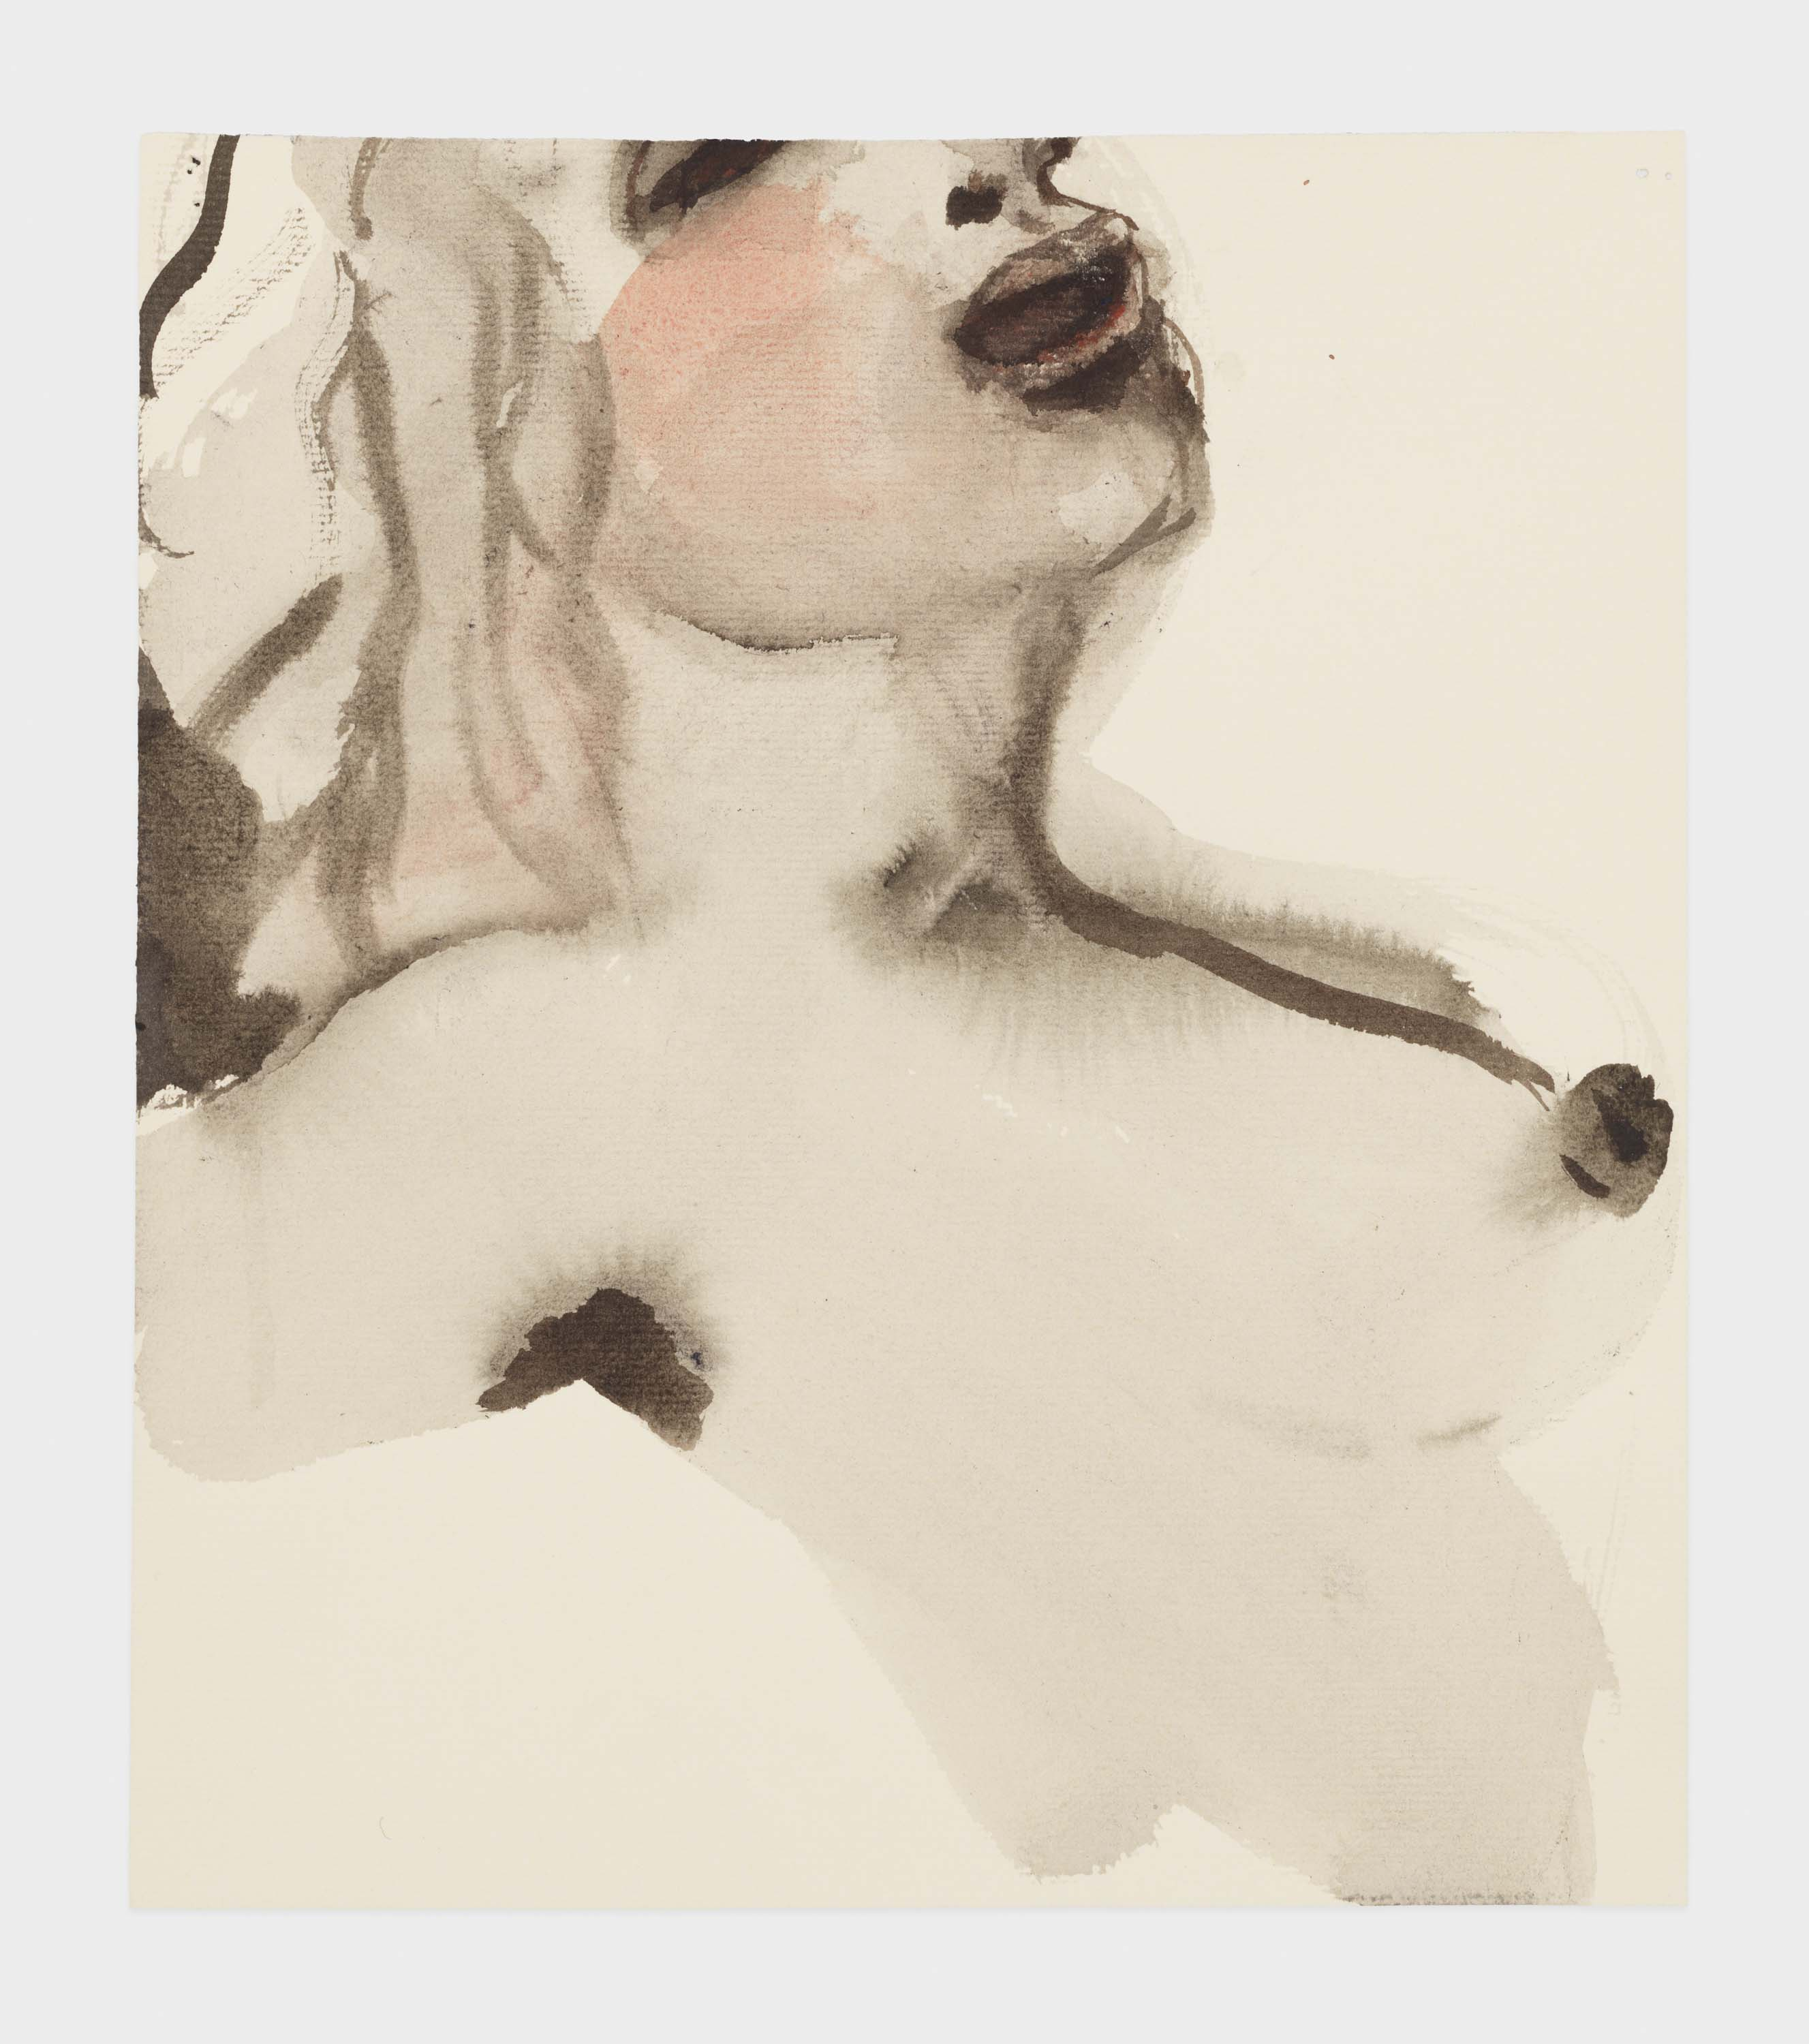 "Marlene Dumas, ""Venus in bliss"", 2015-2016, Ink wash and metallic acrylic on paper 10 1/4 x 9 inches 26 x 22.9 cm. Exposition ""Myths & Mortals"", Galerie David Zwirner, New-York"